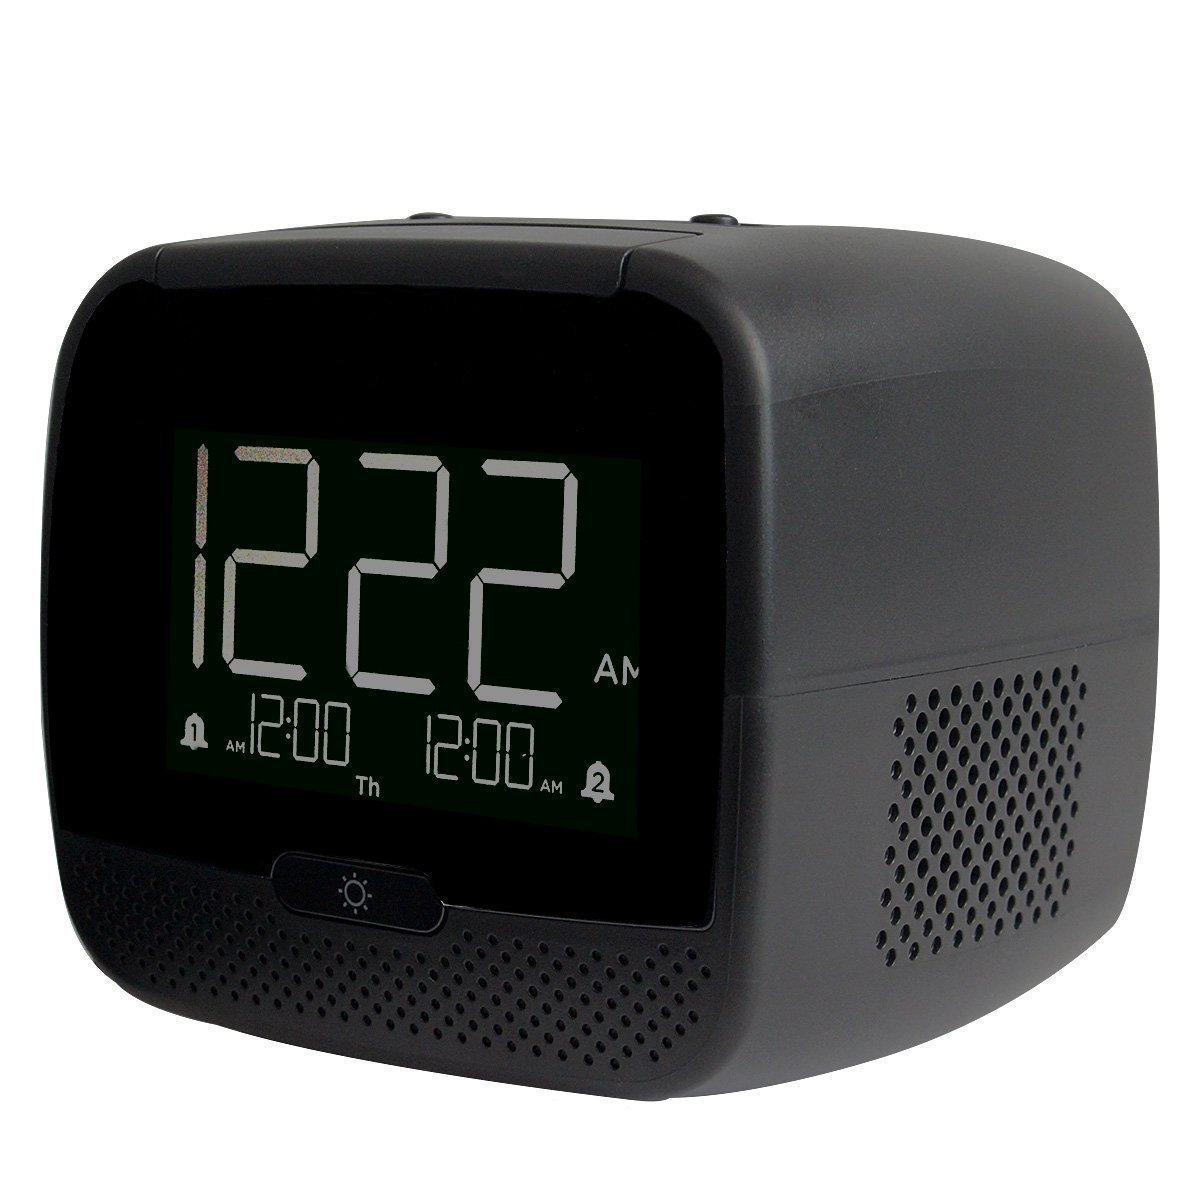 TIVDIO RT-4503 Dual Alarm Clock Radio With FM Wireless Speaker 2 Port Smart Phone Charger Snooze Sleep Timer Battery Backup and Audio Input (Black)